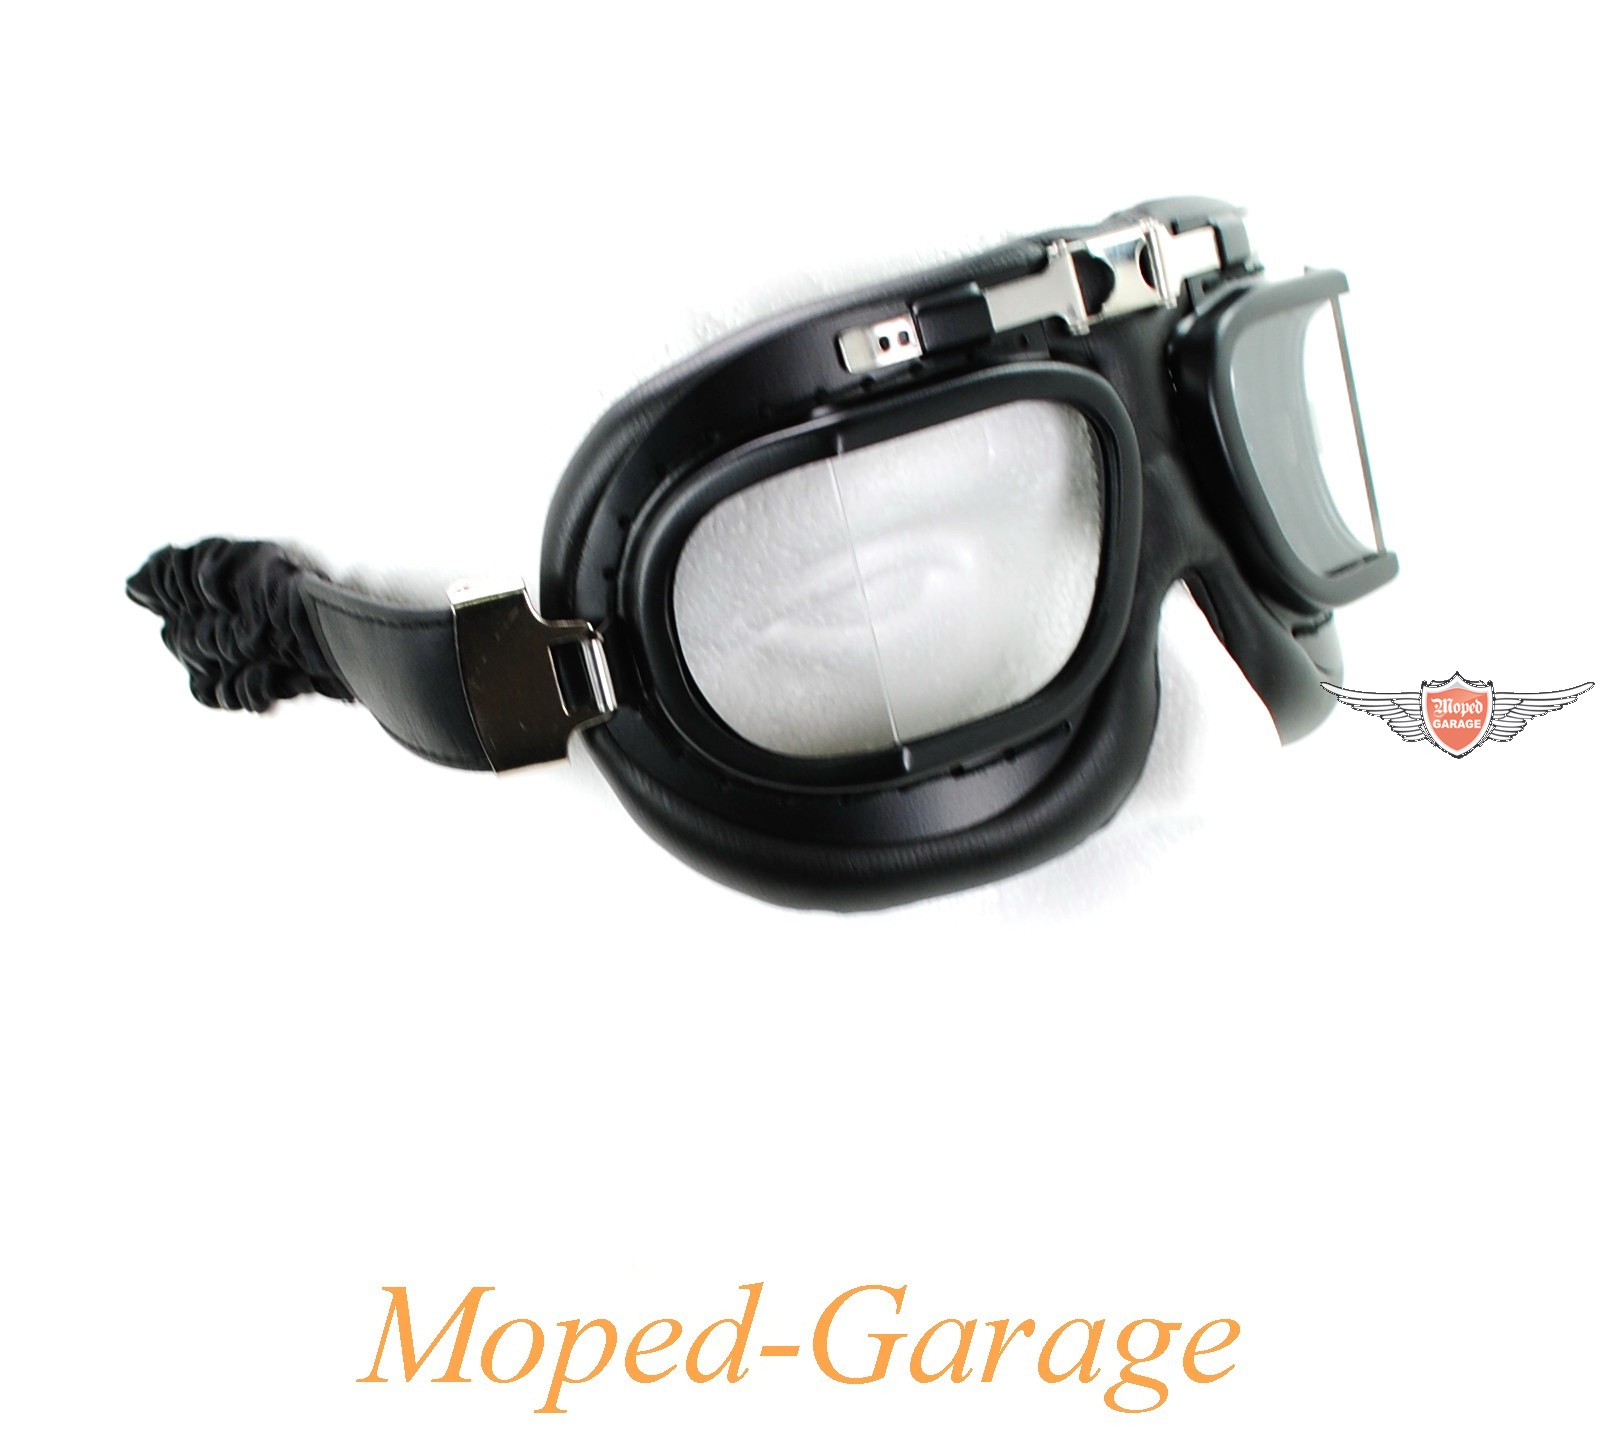 Mofa Moped Motorrad Moped Garage Moped Mokick Mofa Oldtimer Brille